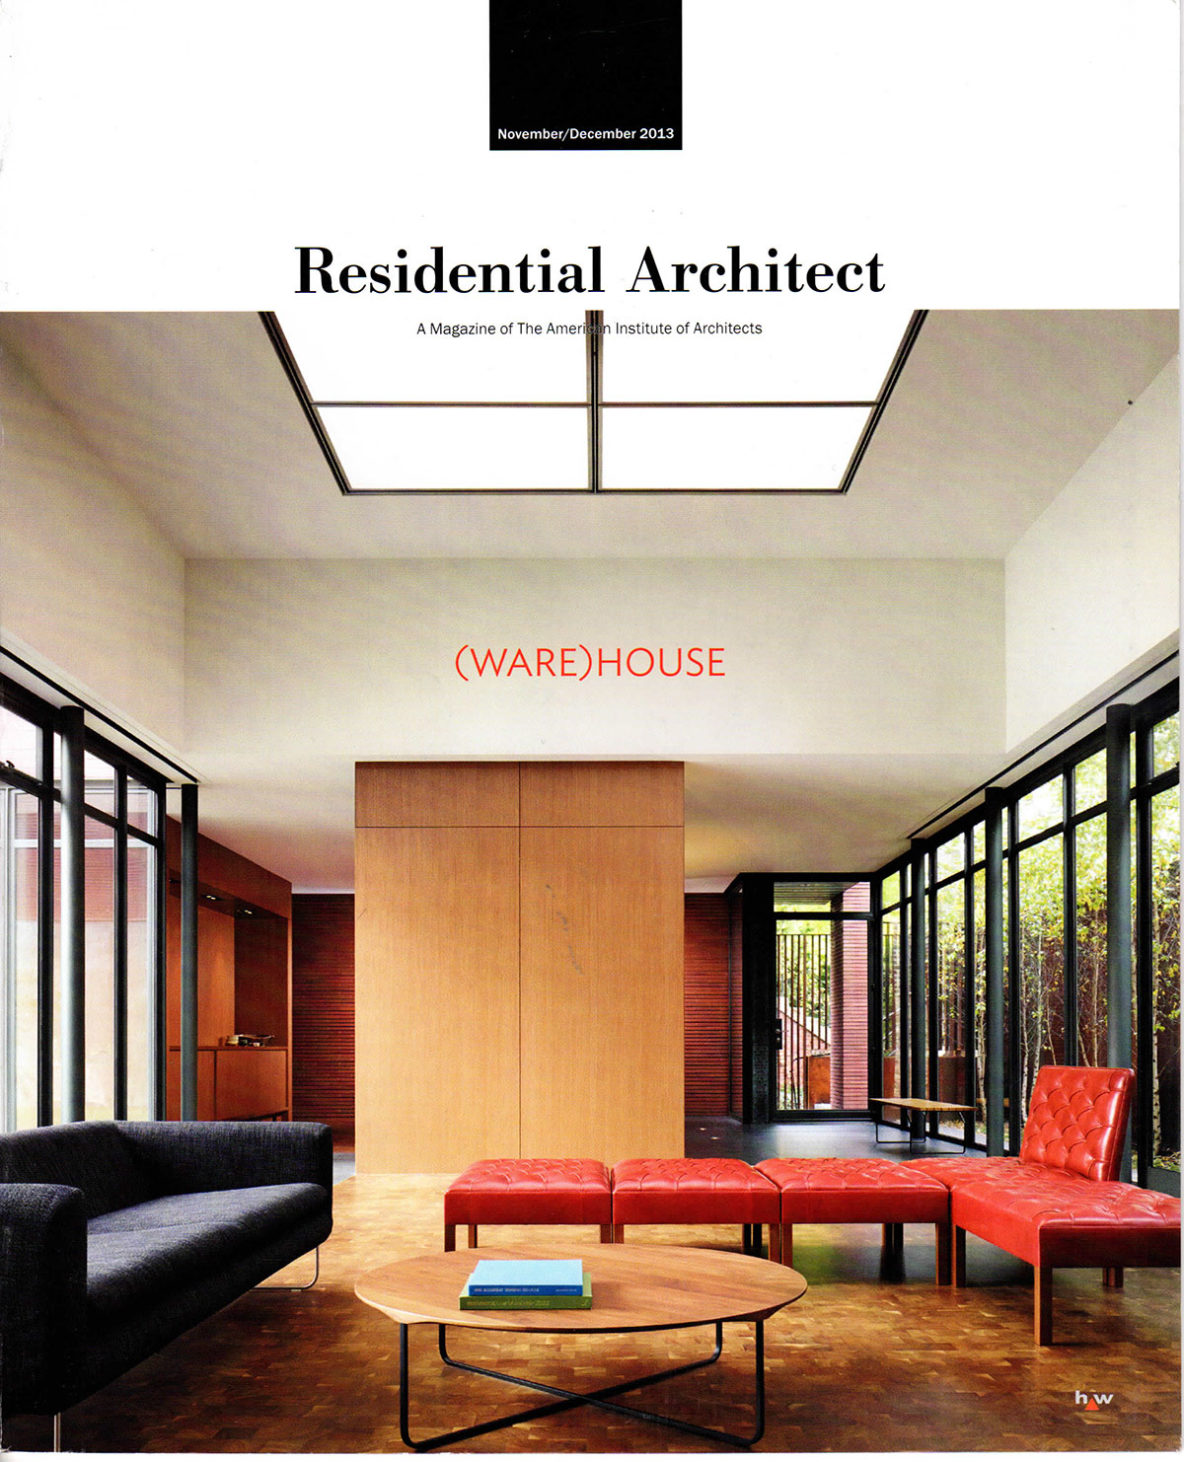 2013-nov-res-arch-cover-northside-res